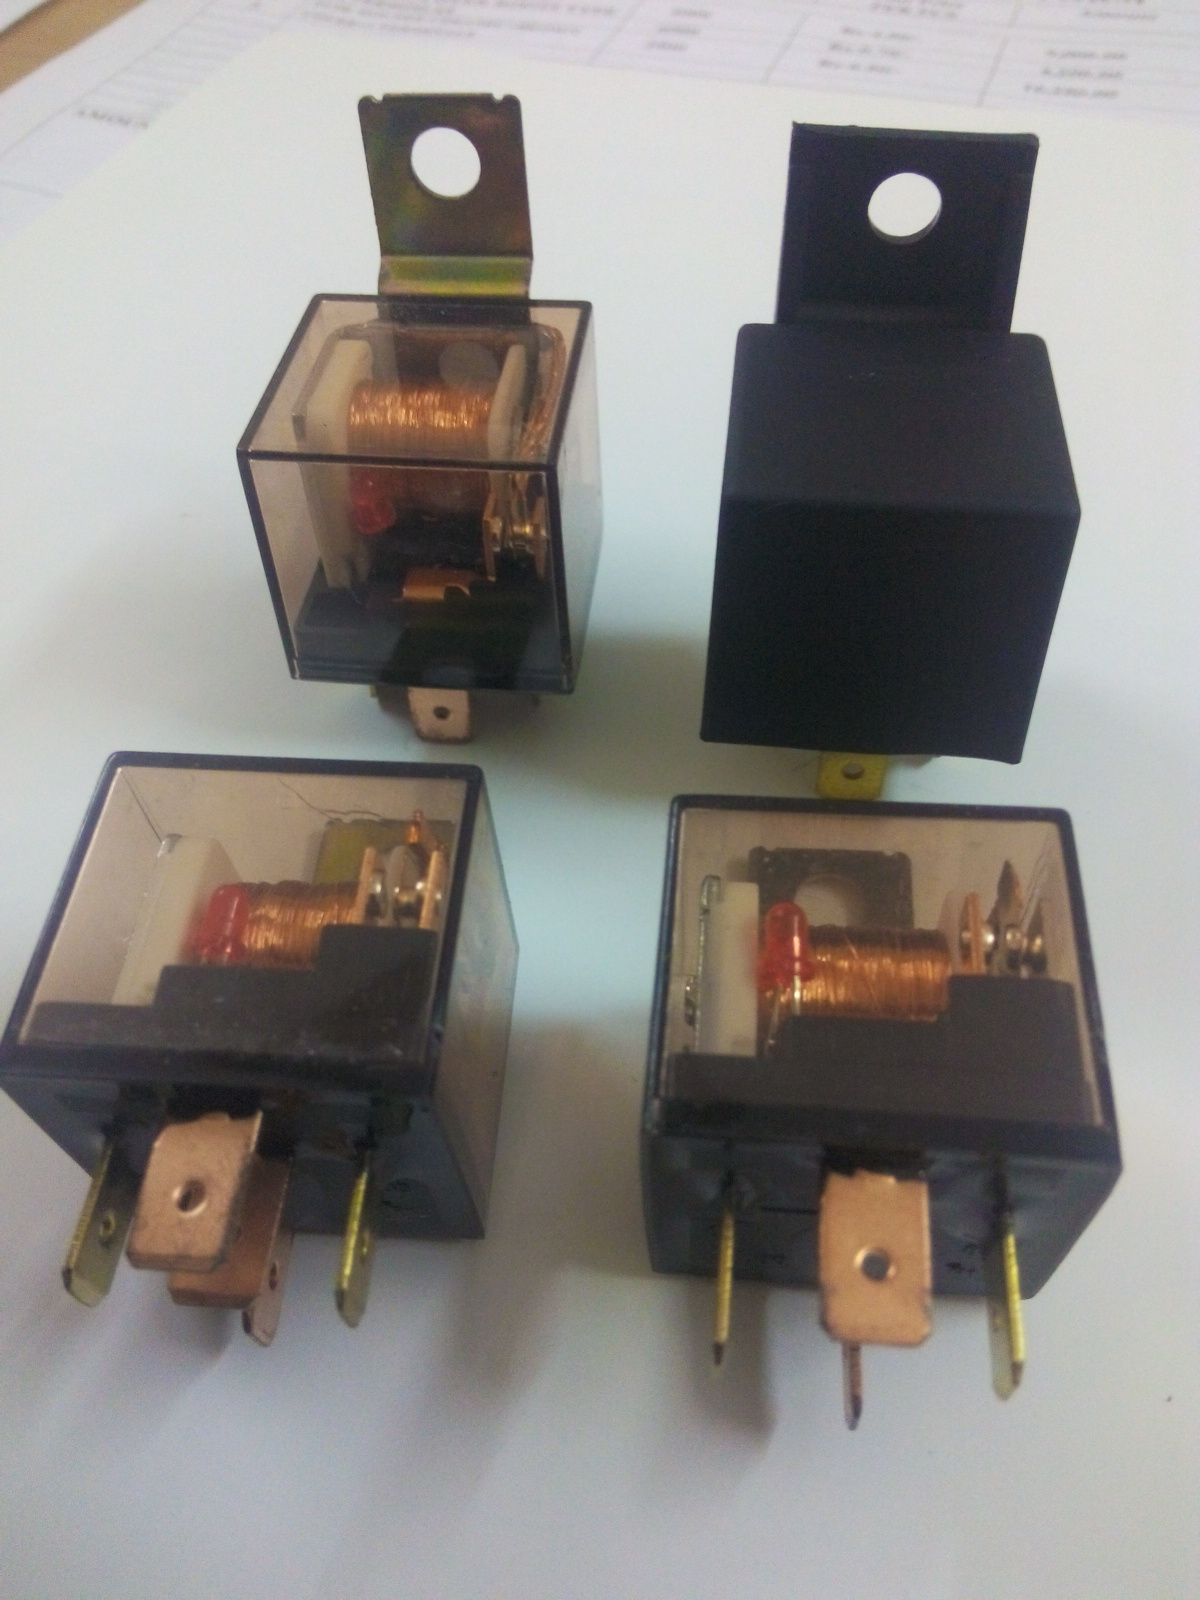 Auto Electrical Parts Scotch Lock Connector Manufacturer From Delhi Wiring Harness Manufacturers